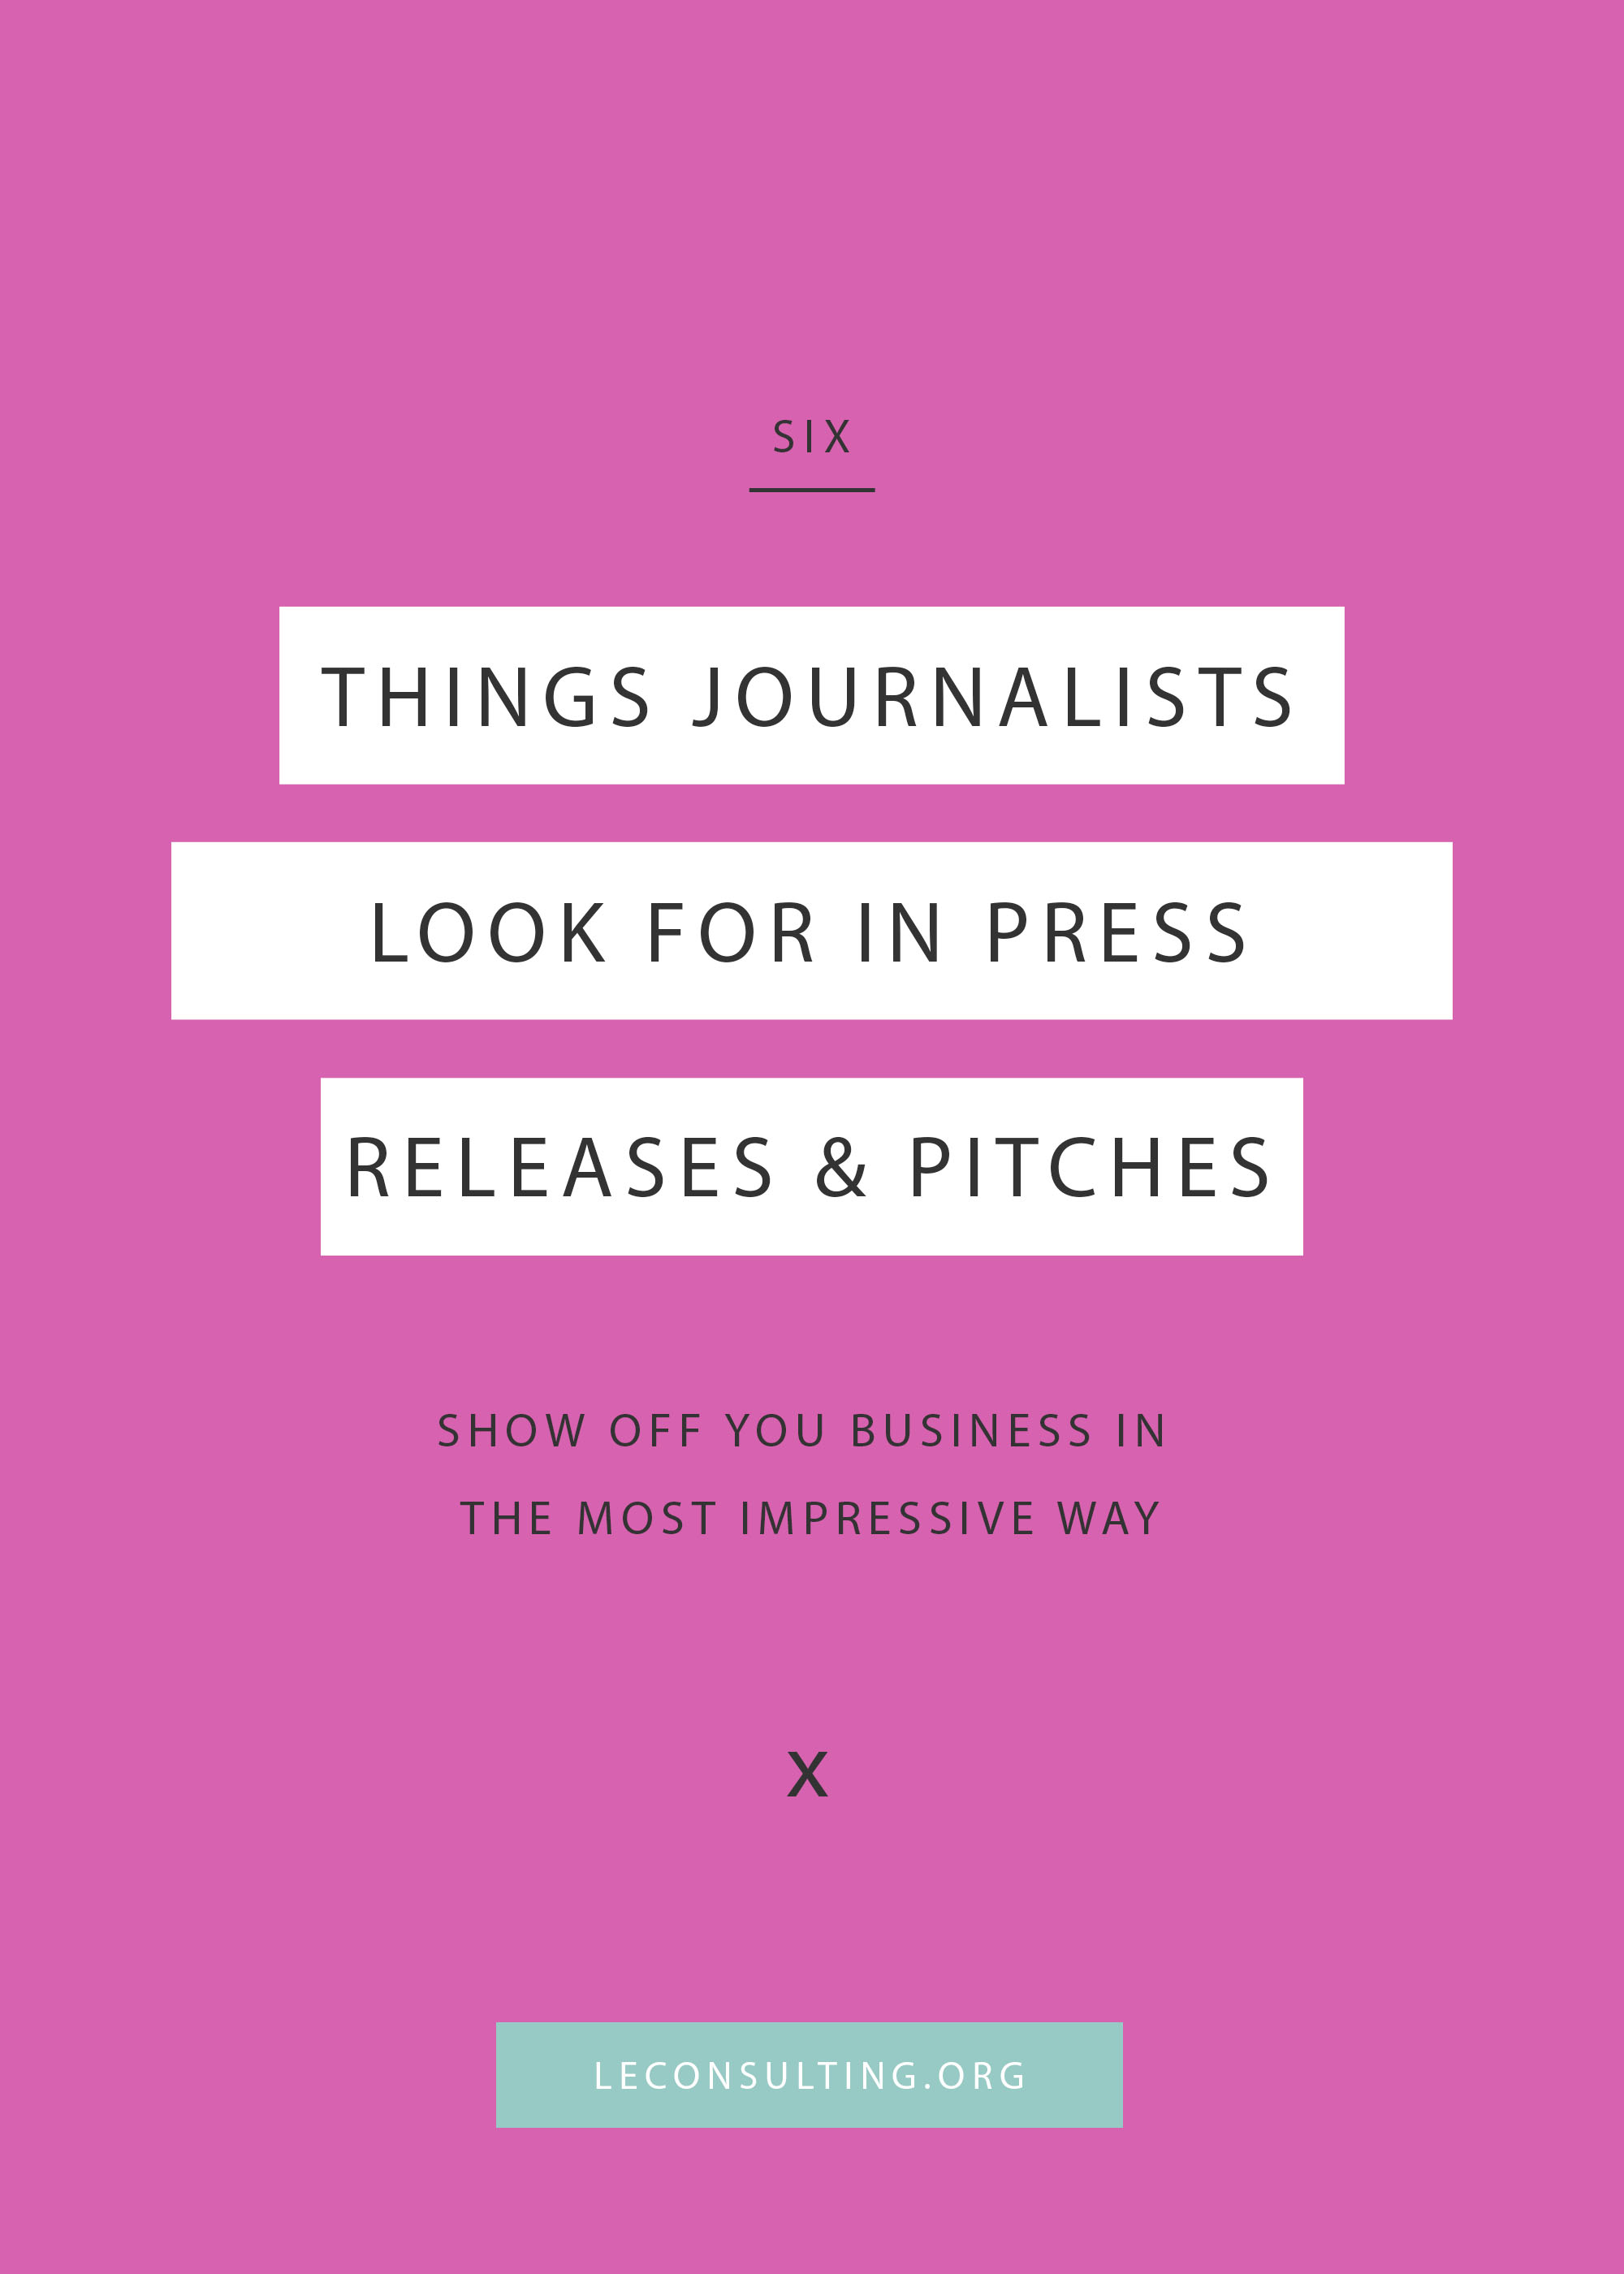 Ready to show off your creative business to the press? Sending out your own press release means you have to brush up on your public relations skills. No worries, we're sharing the six things journalists look for in a press release and pitch. Click through to read how to impress the press. | LE Consulting